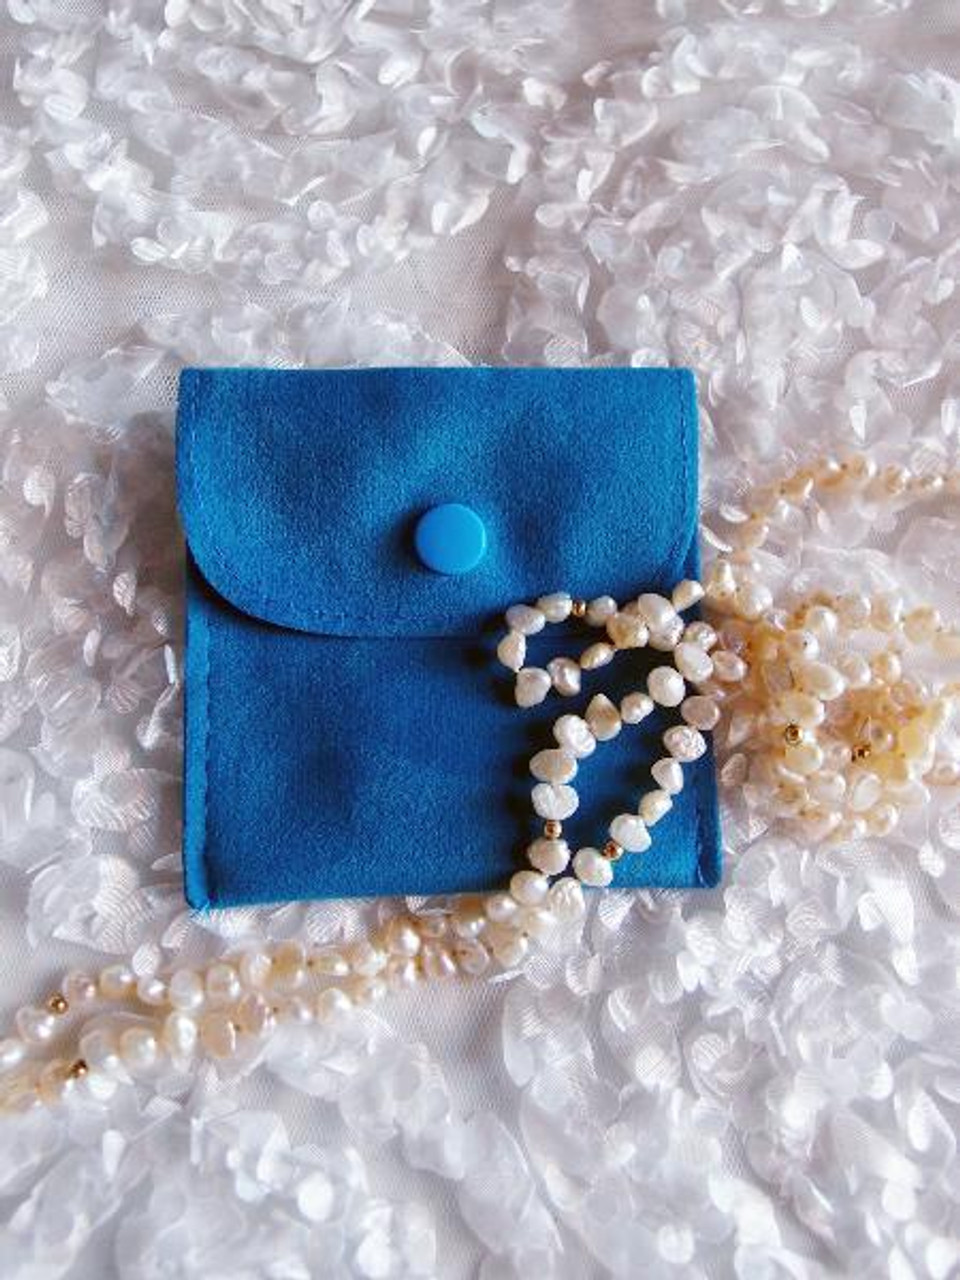 Wholesale Velvet Jewelry Bags, Peacock Blue Velvet Jewelry Pouch with Snap Fastener 3 x 3 inches J134-85 | Packaging Decor